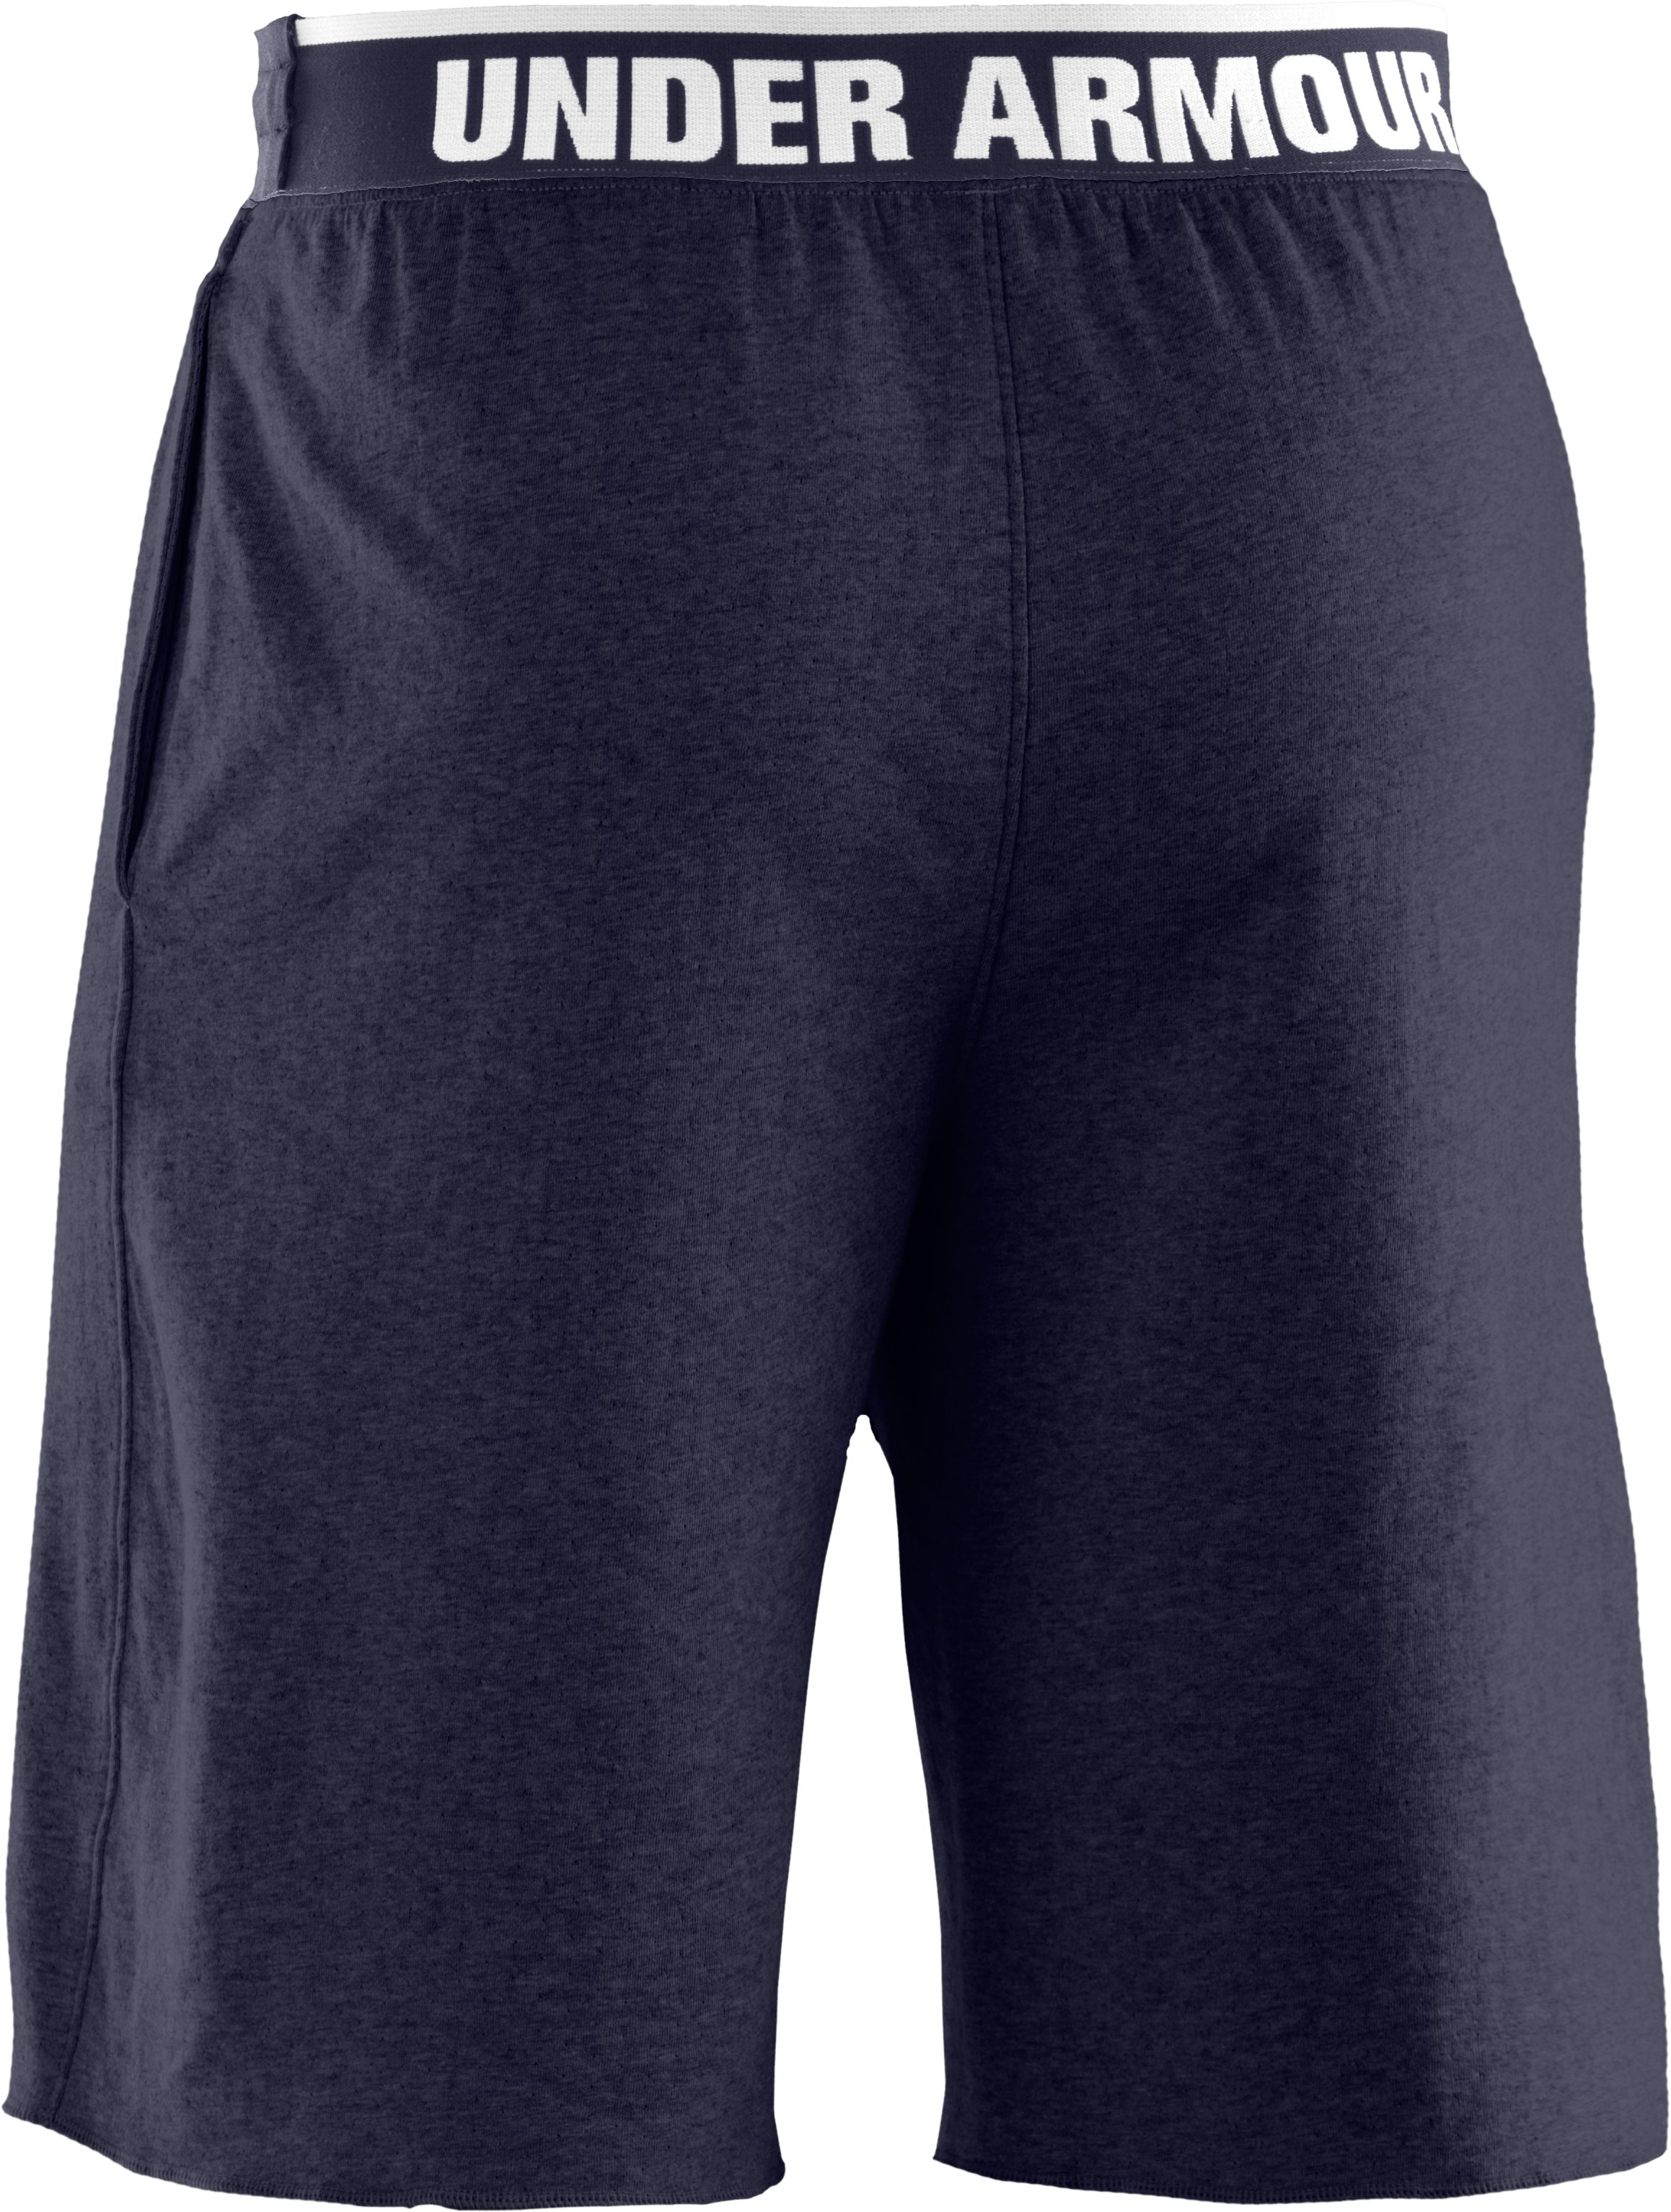 Men's Charged Cotton® Contender Shorts, Midnight Navy